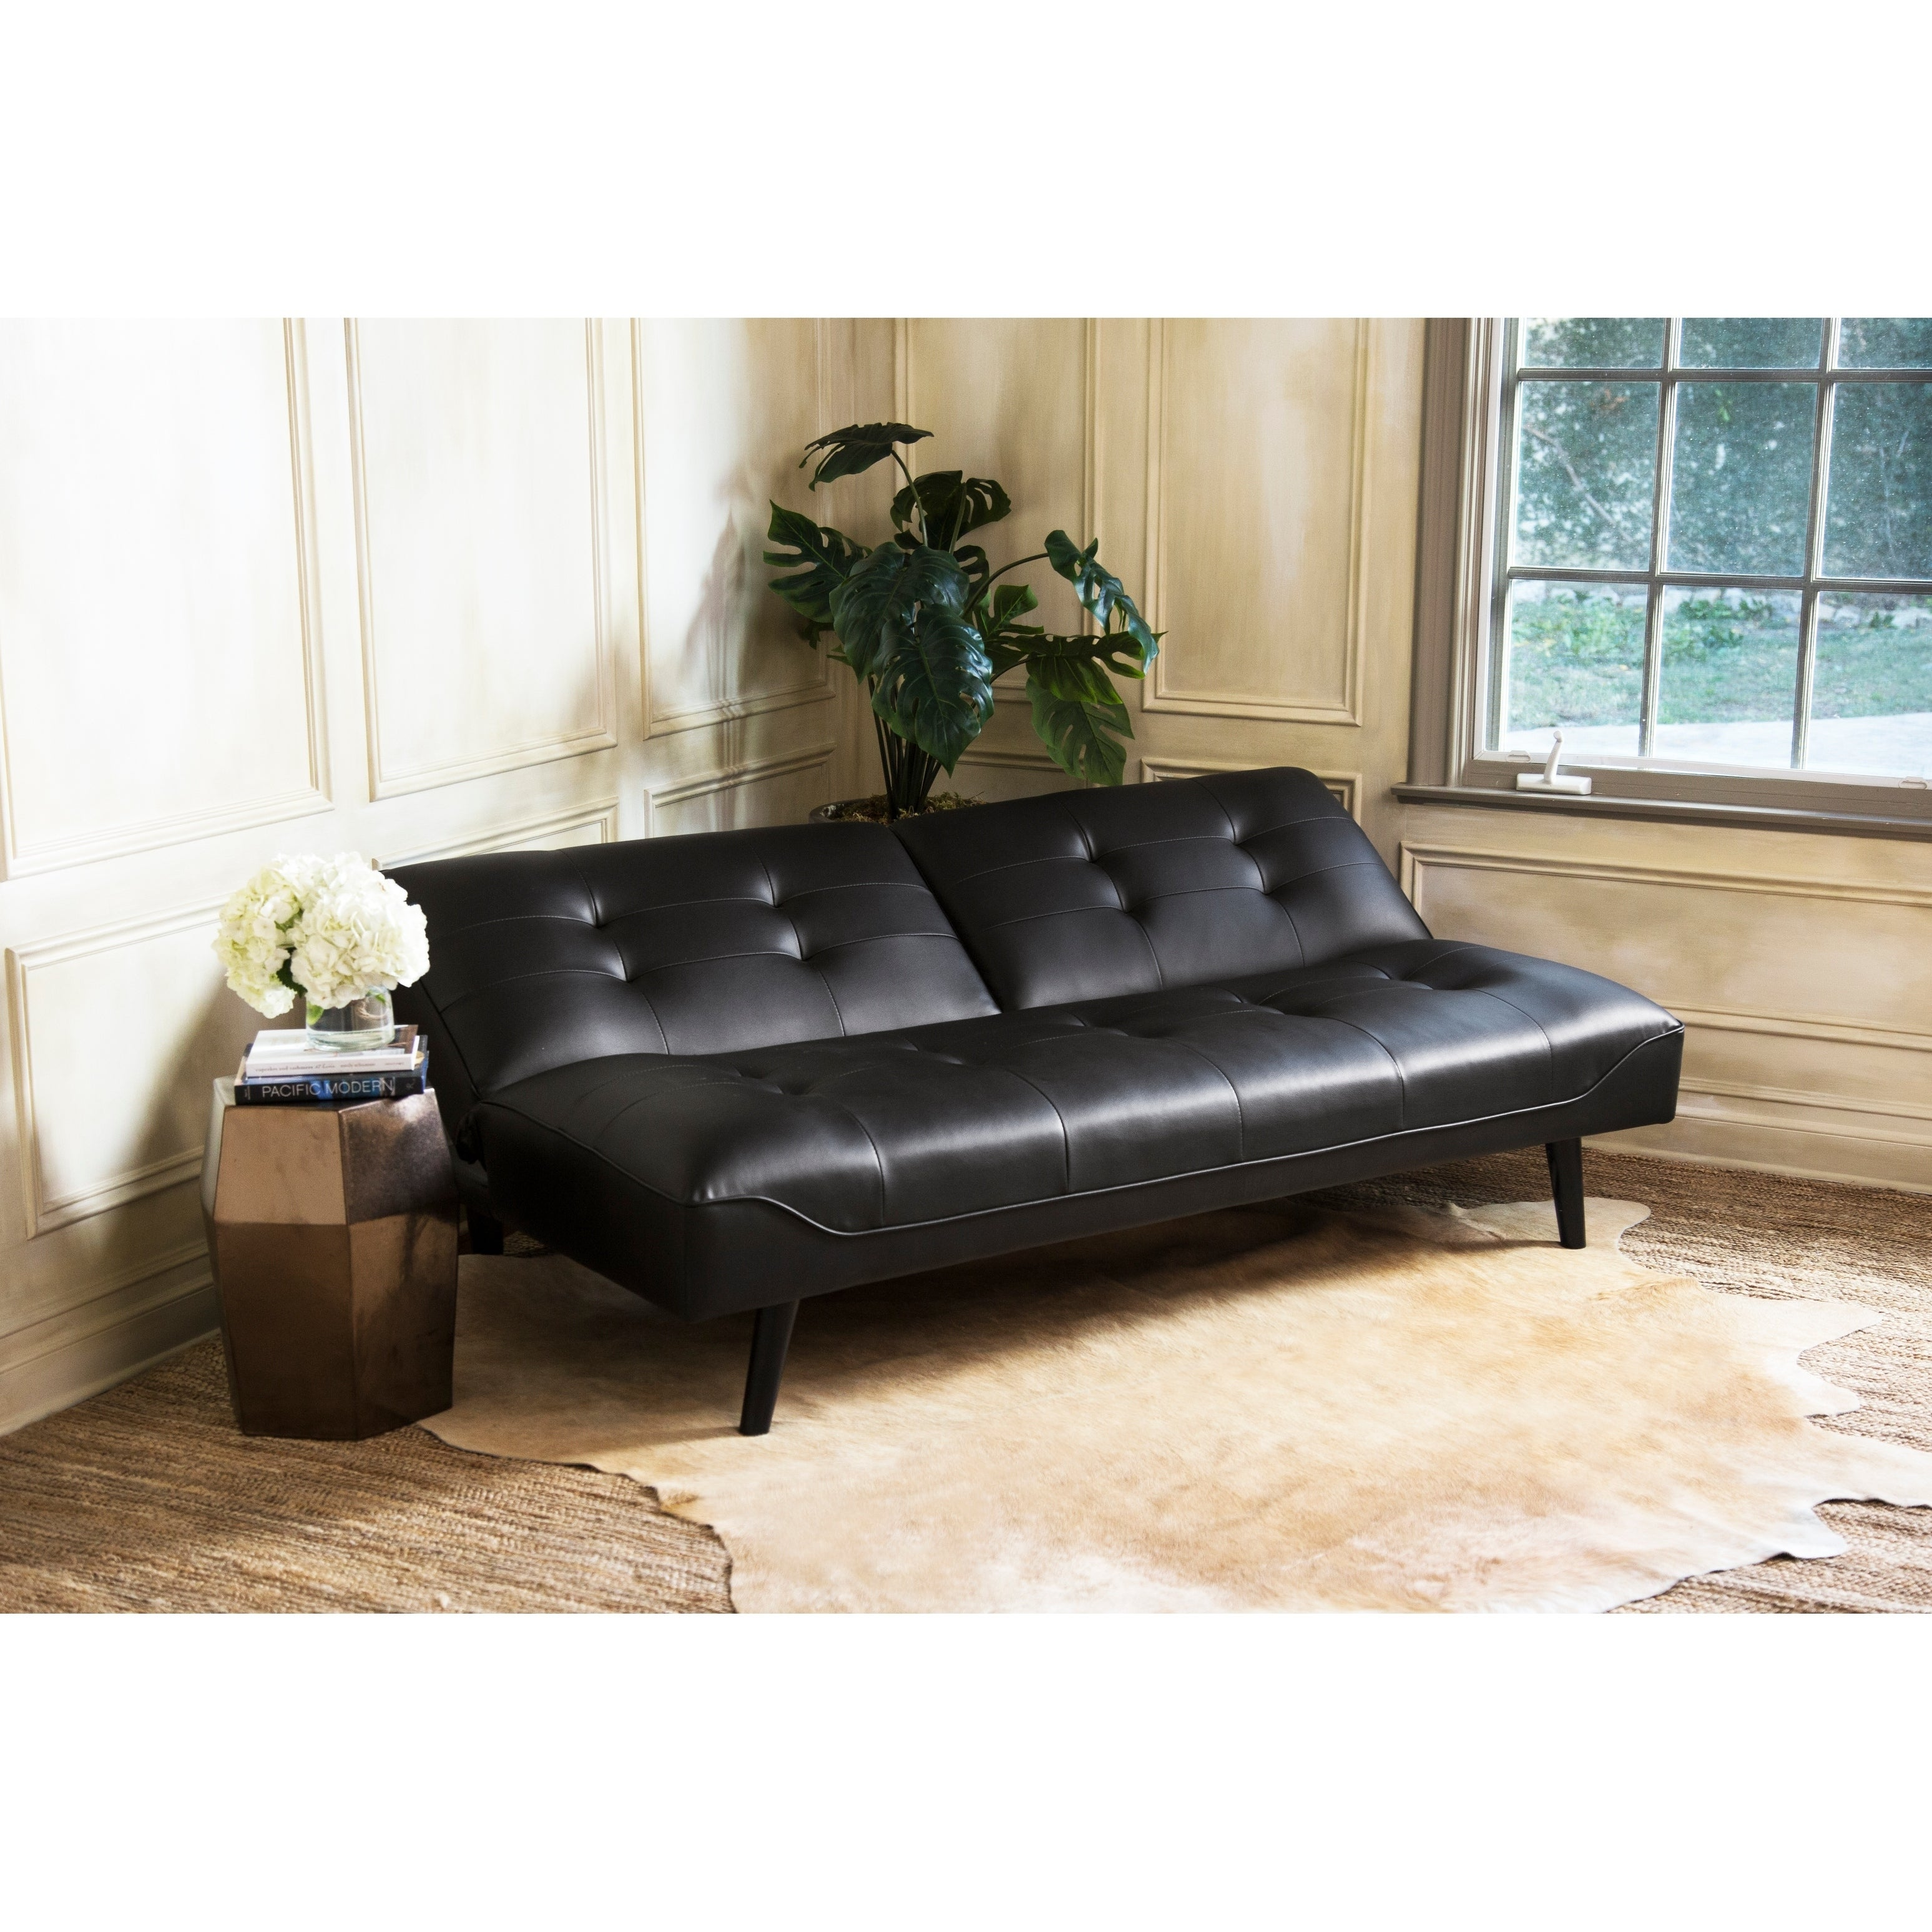 Medium image of abbyson venice bonded leather futon   free shipping today   overstock     25524785